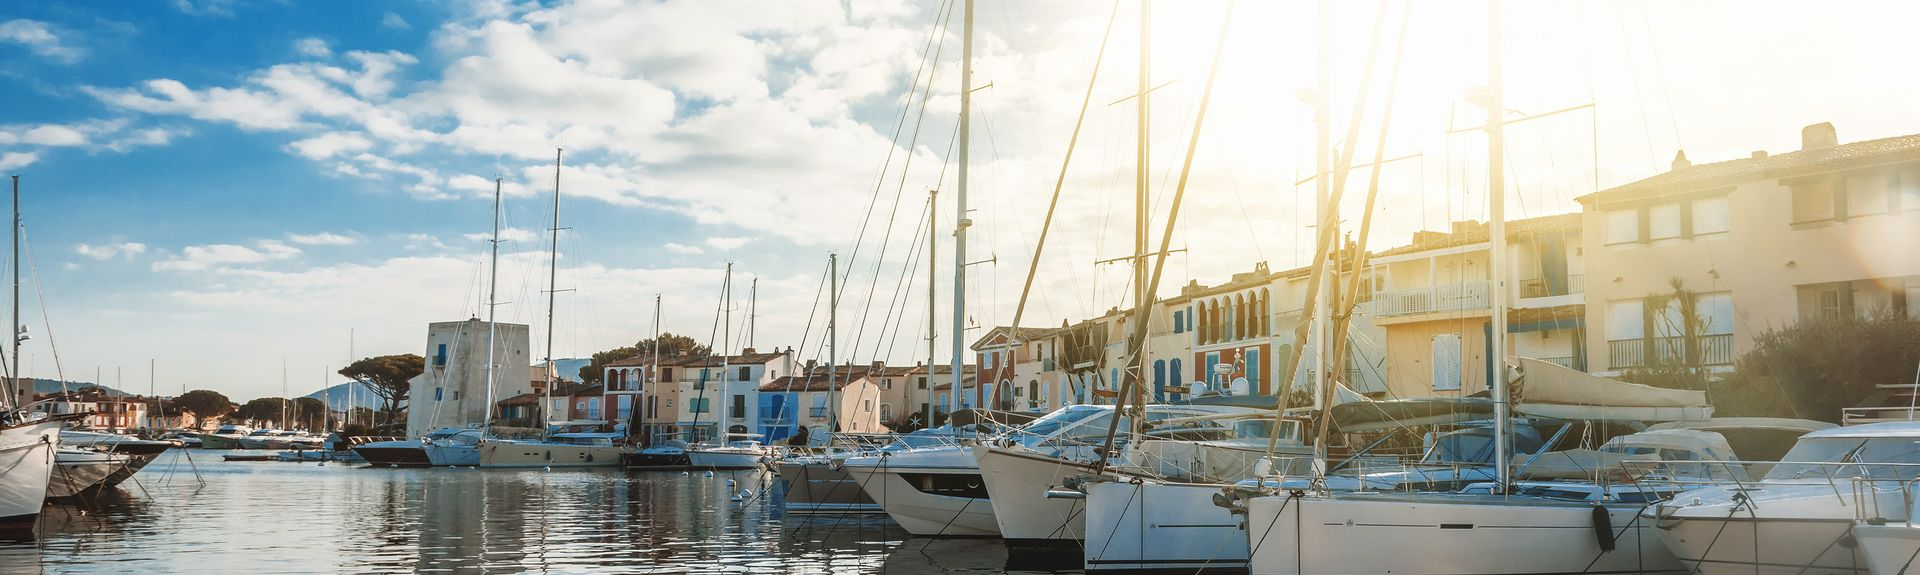 Port Grimaud, Grimaud, PACA, France